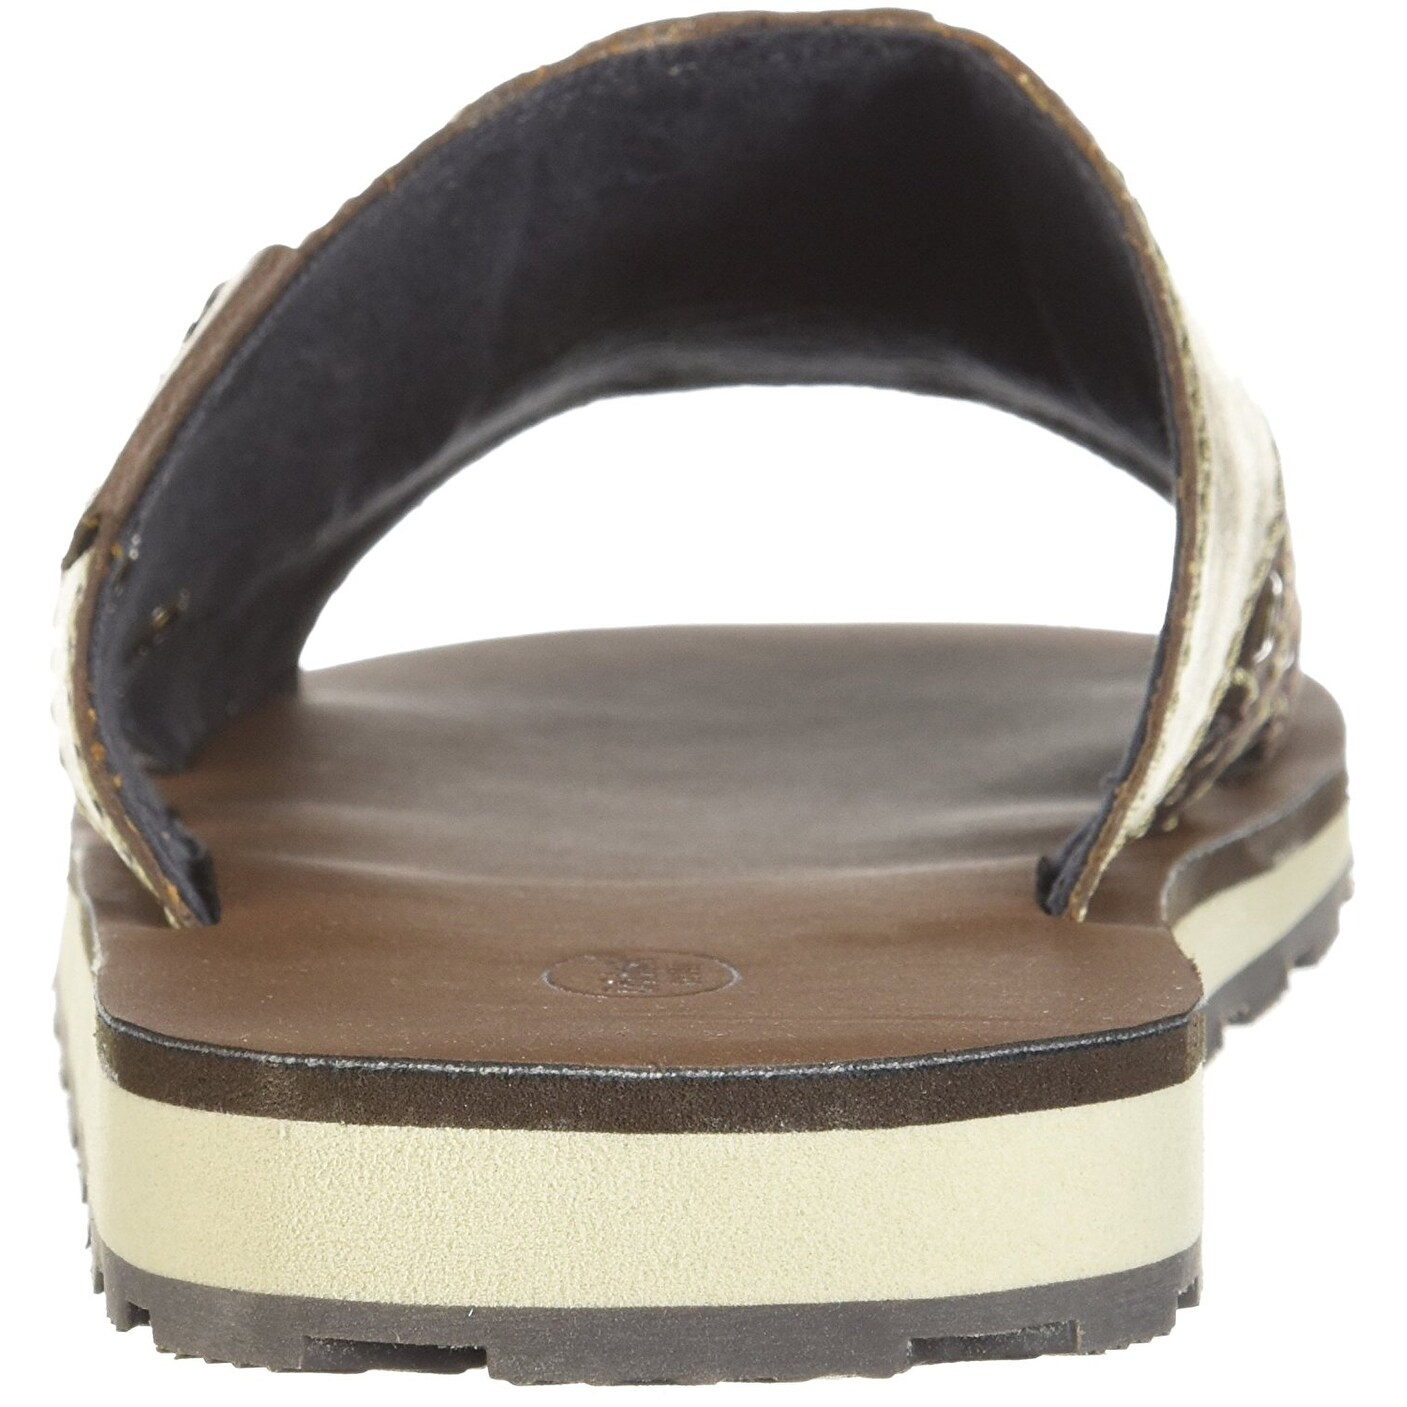 b0bc18820e64 Shop Dr. Scholl s Shoes Men s Basin Slide Sandal - Free Shipping On Orders  Over  45 - Overstock - 27100423